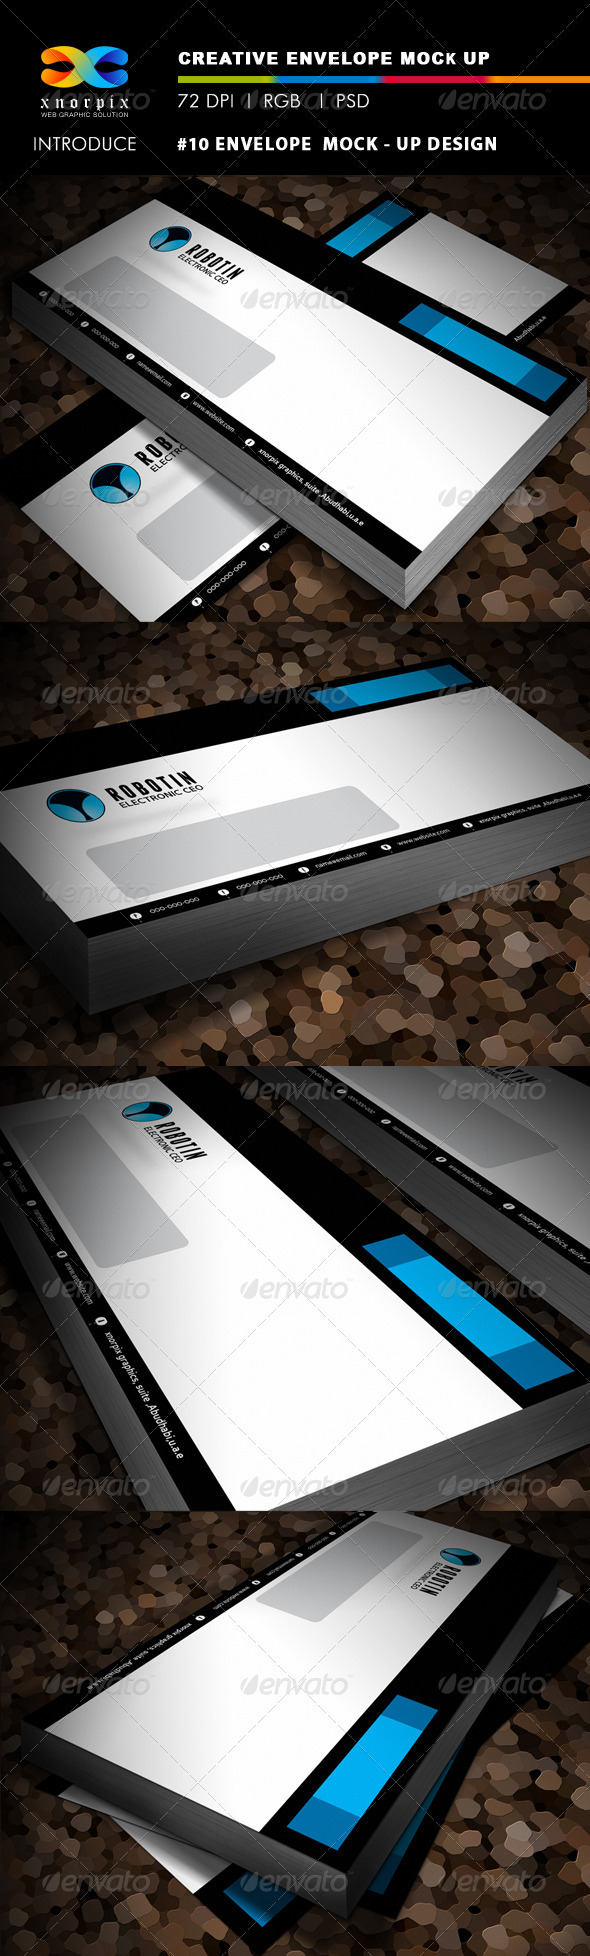 #10 Envelope Mock-up - Stationery Print